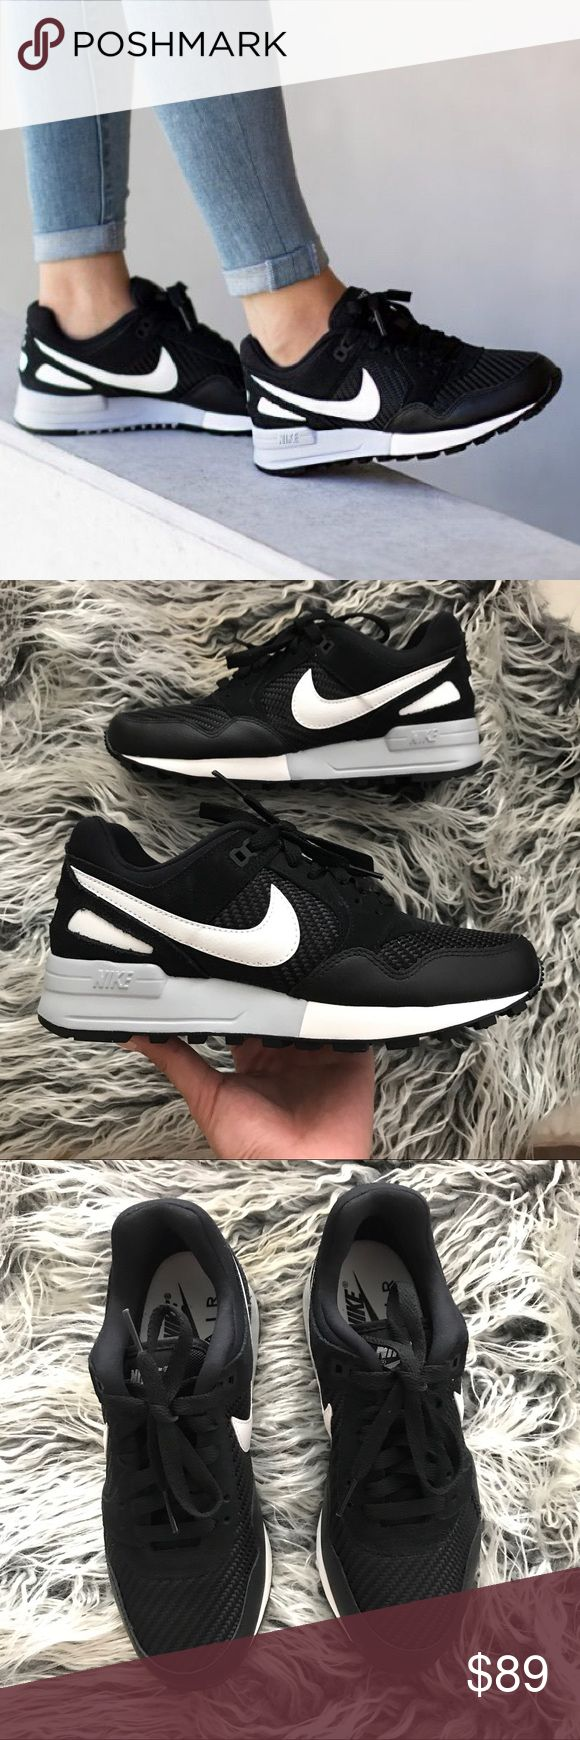 🔥PRICE DROP Nike Air Pegasus Brand new with the box but no lid Nike Shoes Athletic Shoes